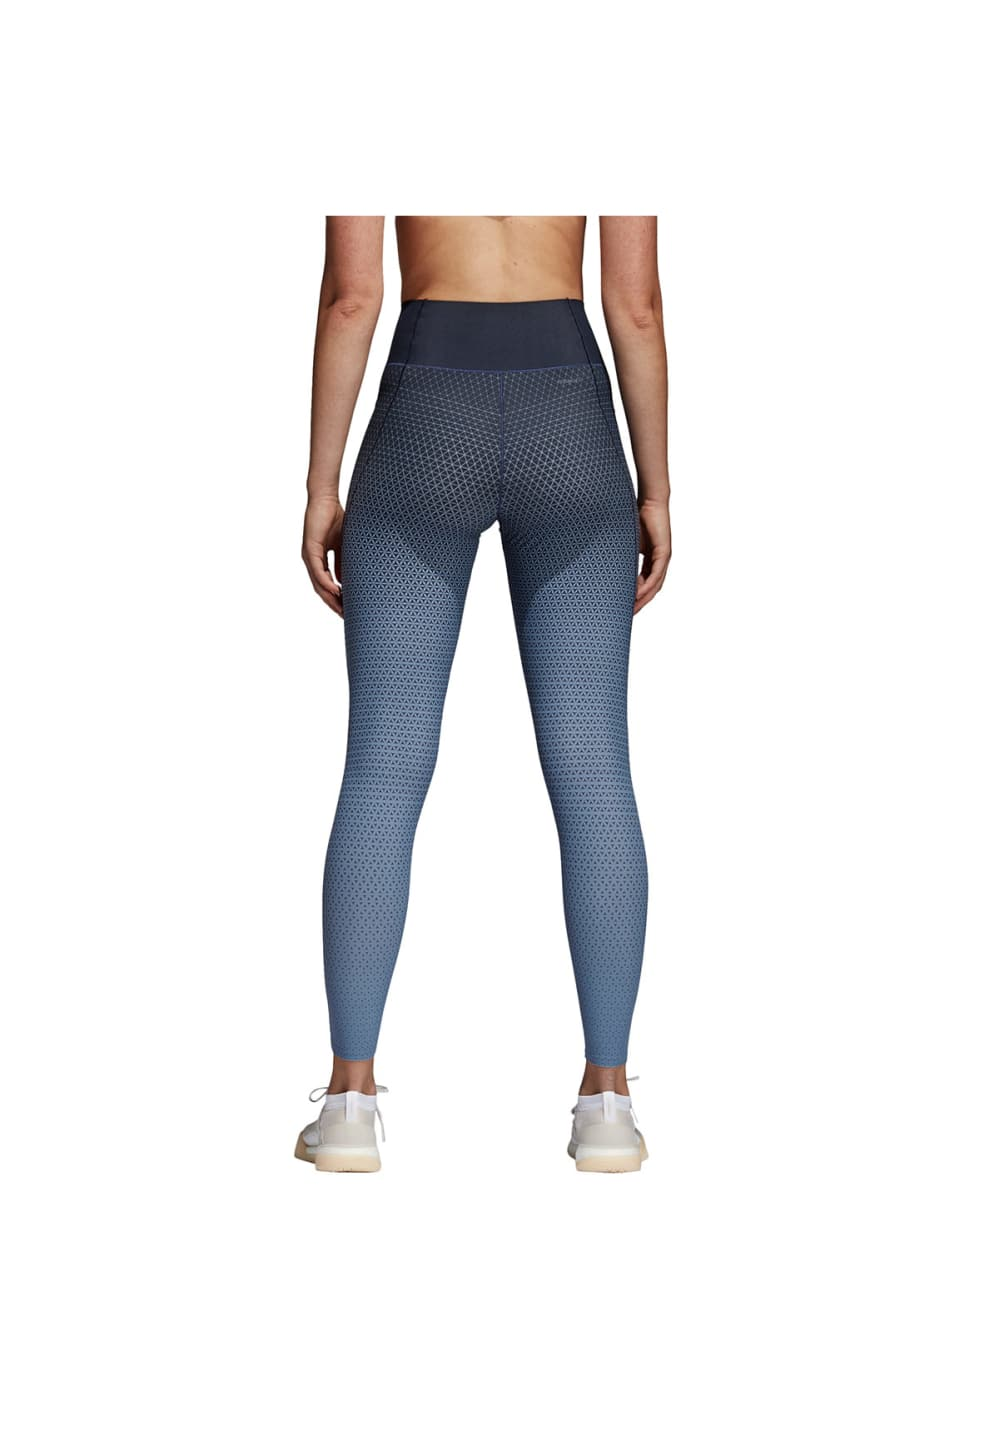 ee90d0a67c1f4 adidas Ultimate Miracle Sculpt Tight - Fitness trousers for Women ...